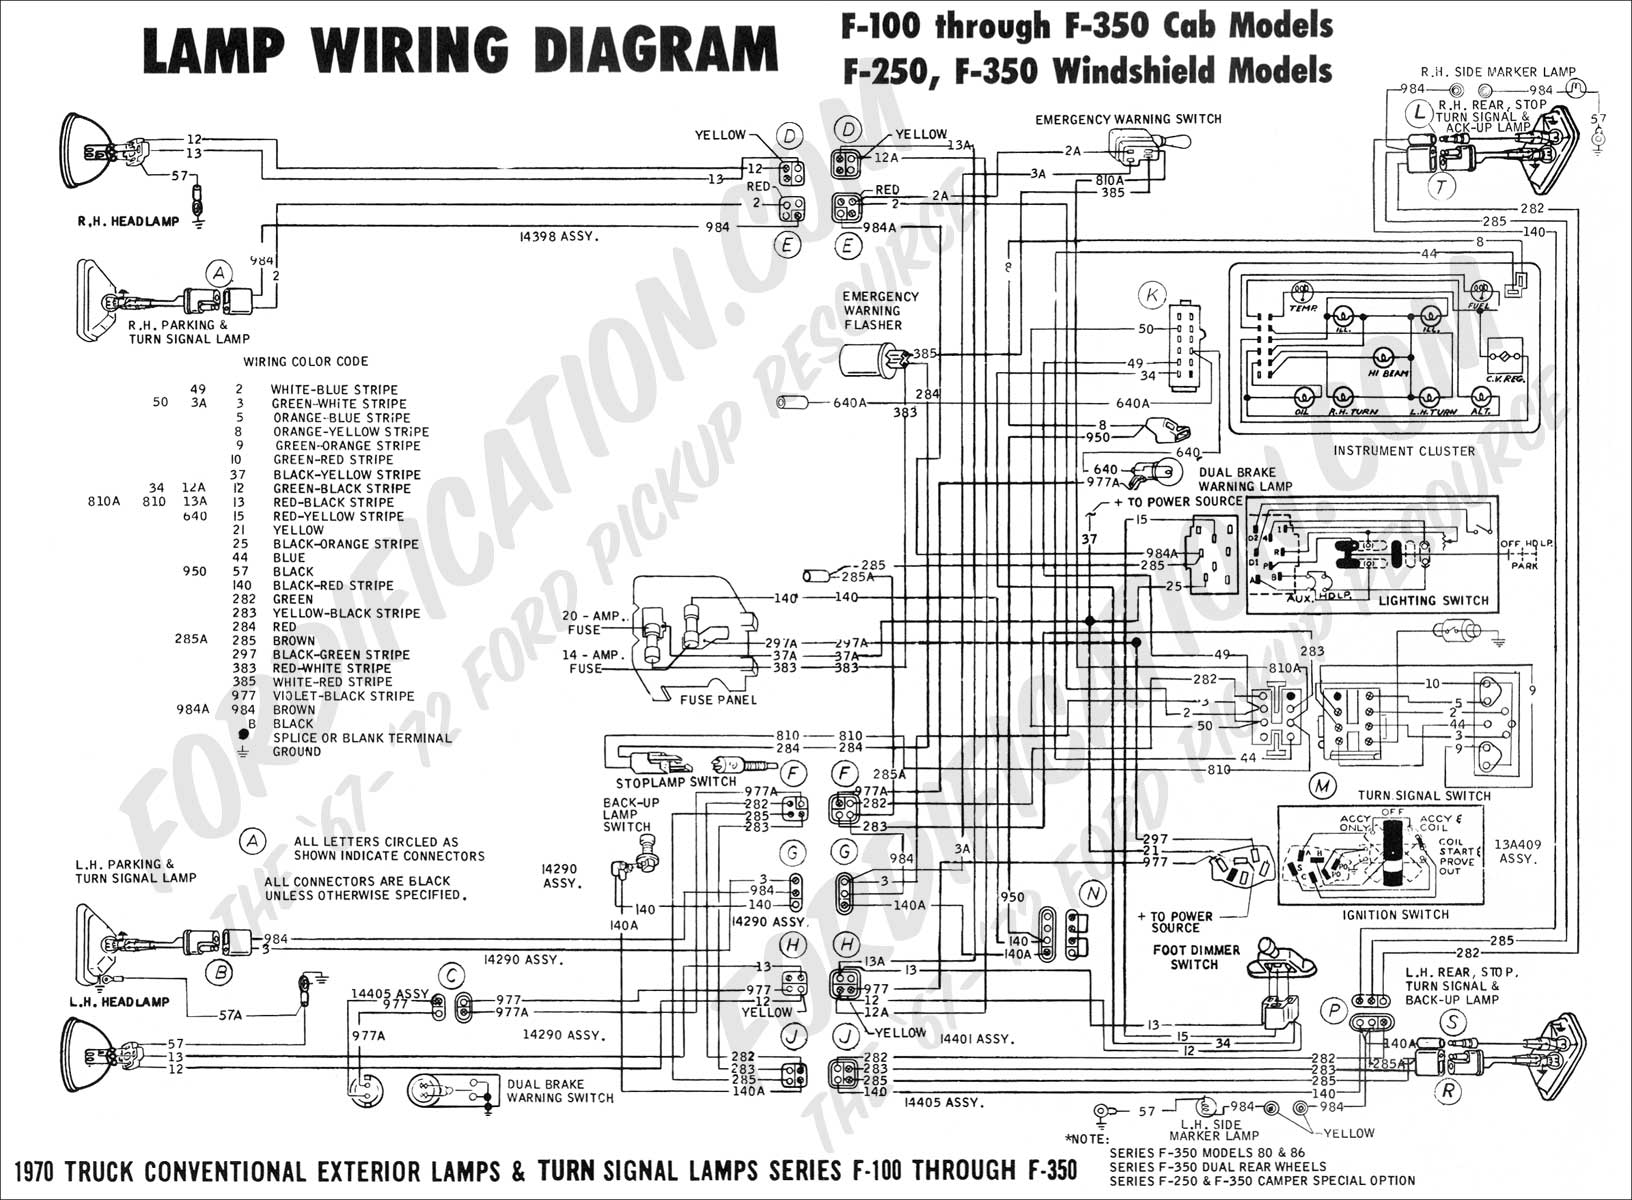 1993 F150 Fuse Diagram Facts About Wiring Ford Ranger Box F350 Electrical Diagrams Forum U2022 Rh Jimmellon Co Uk Panel